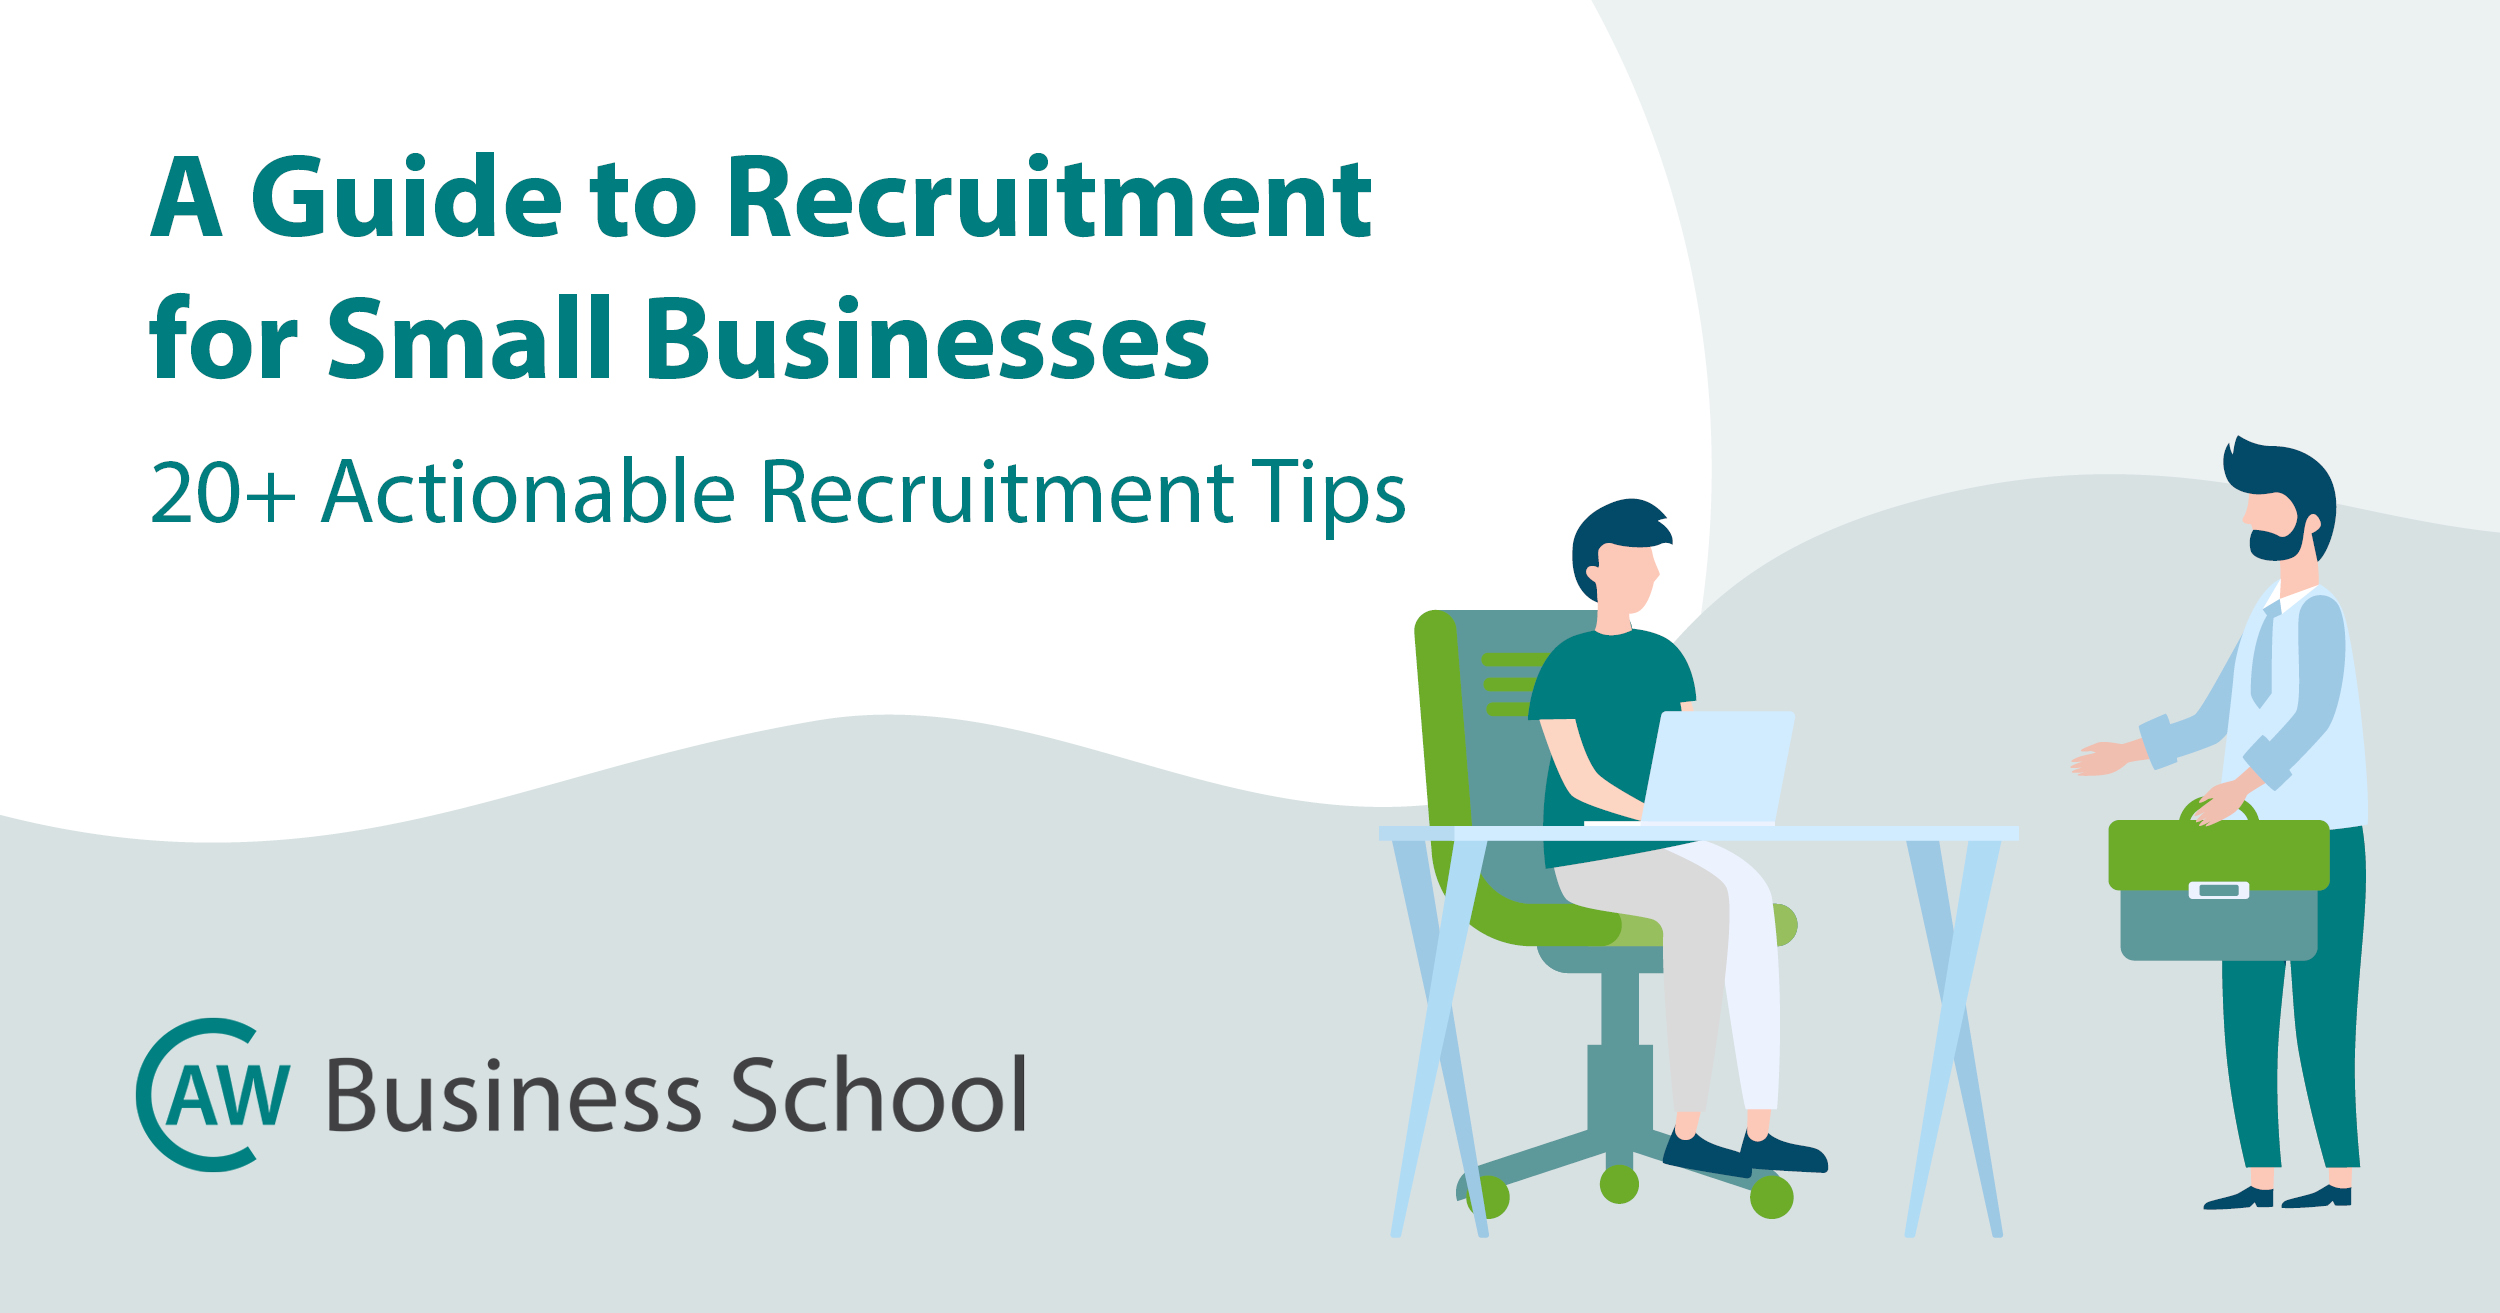 20+ Recruitment Tips for Small Businesses (A Guide to Recruitment)